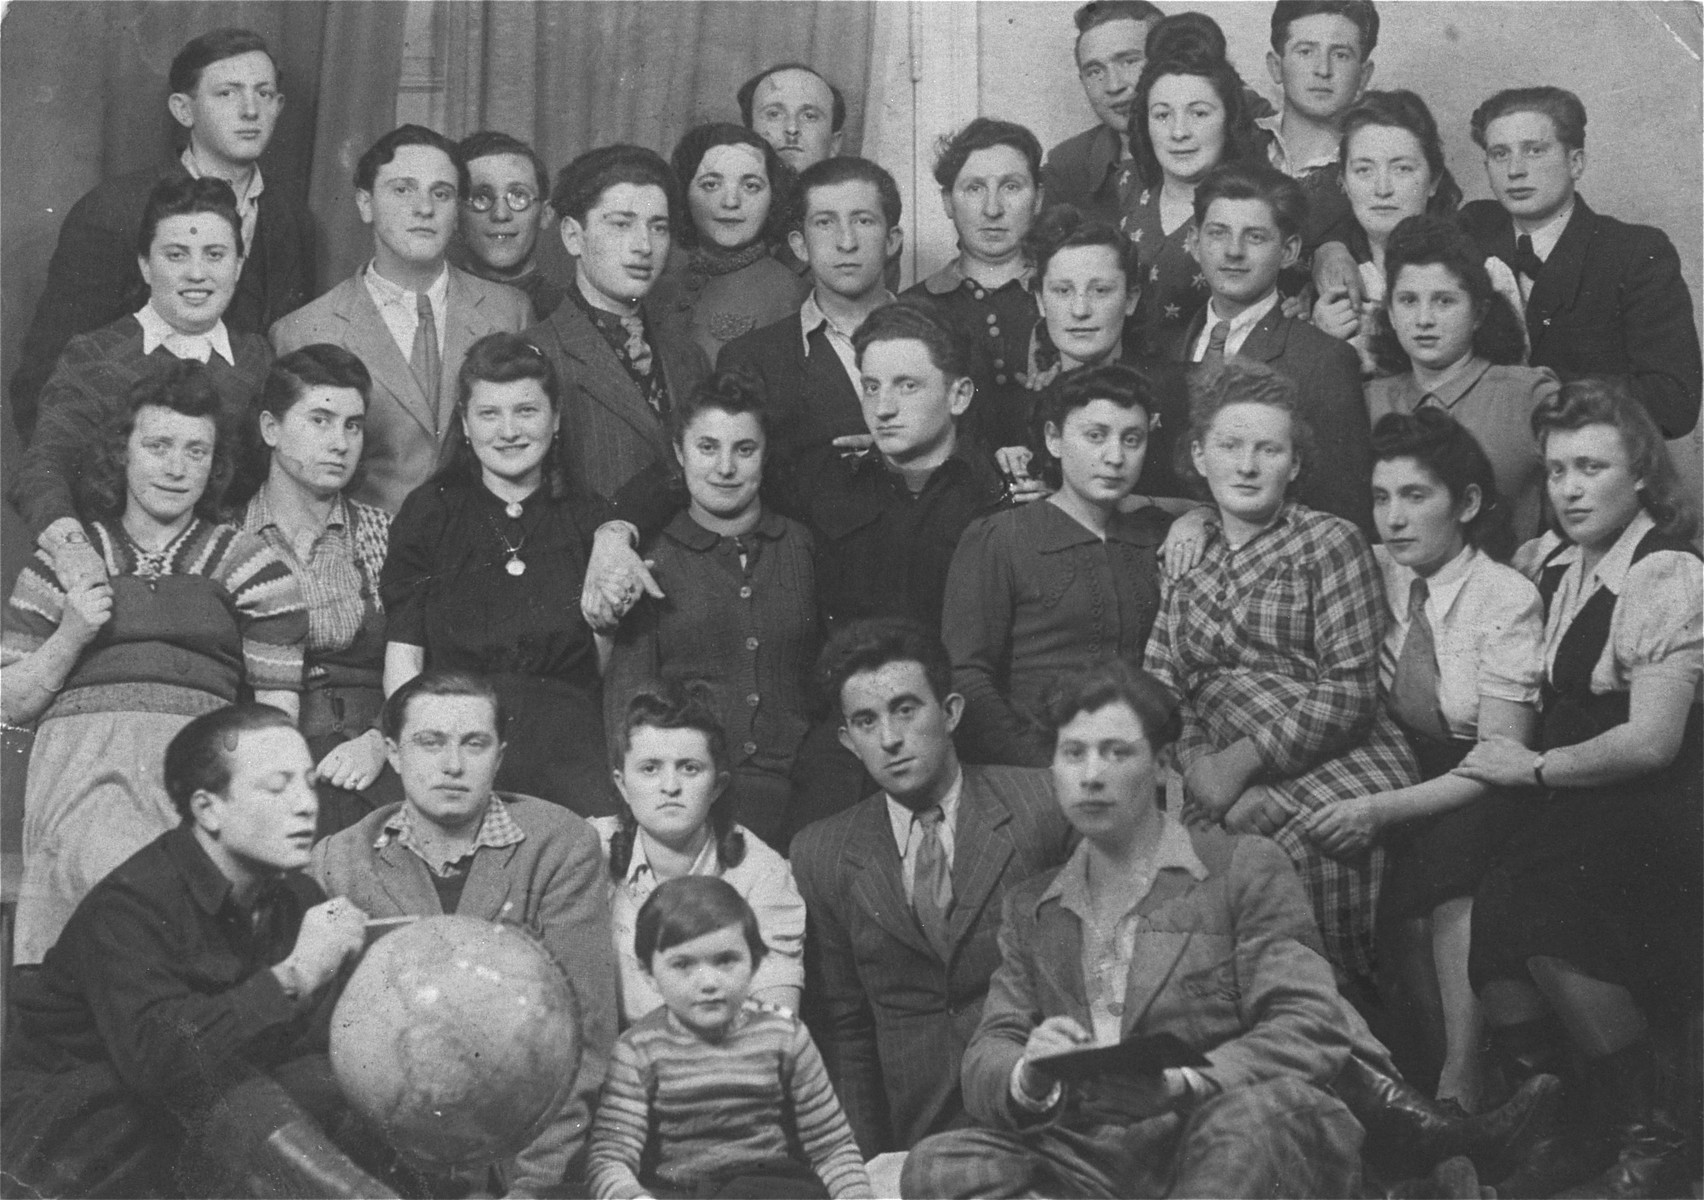 Group portrait of Jewish DPs in the Ludwigsdorf displaced persons' camp.  Among those pictured is Pinchas (Pinek) Rajzman (now Pinchas Reisman) from Sosnowiec, standing in the 3rd row, second from the right (directly behind woman in plaid dress).